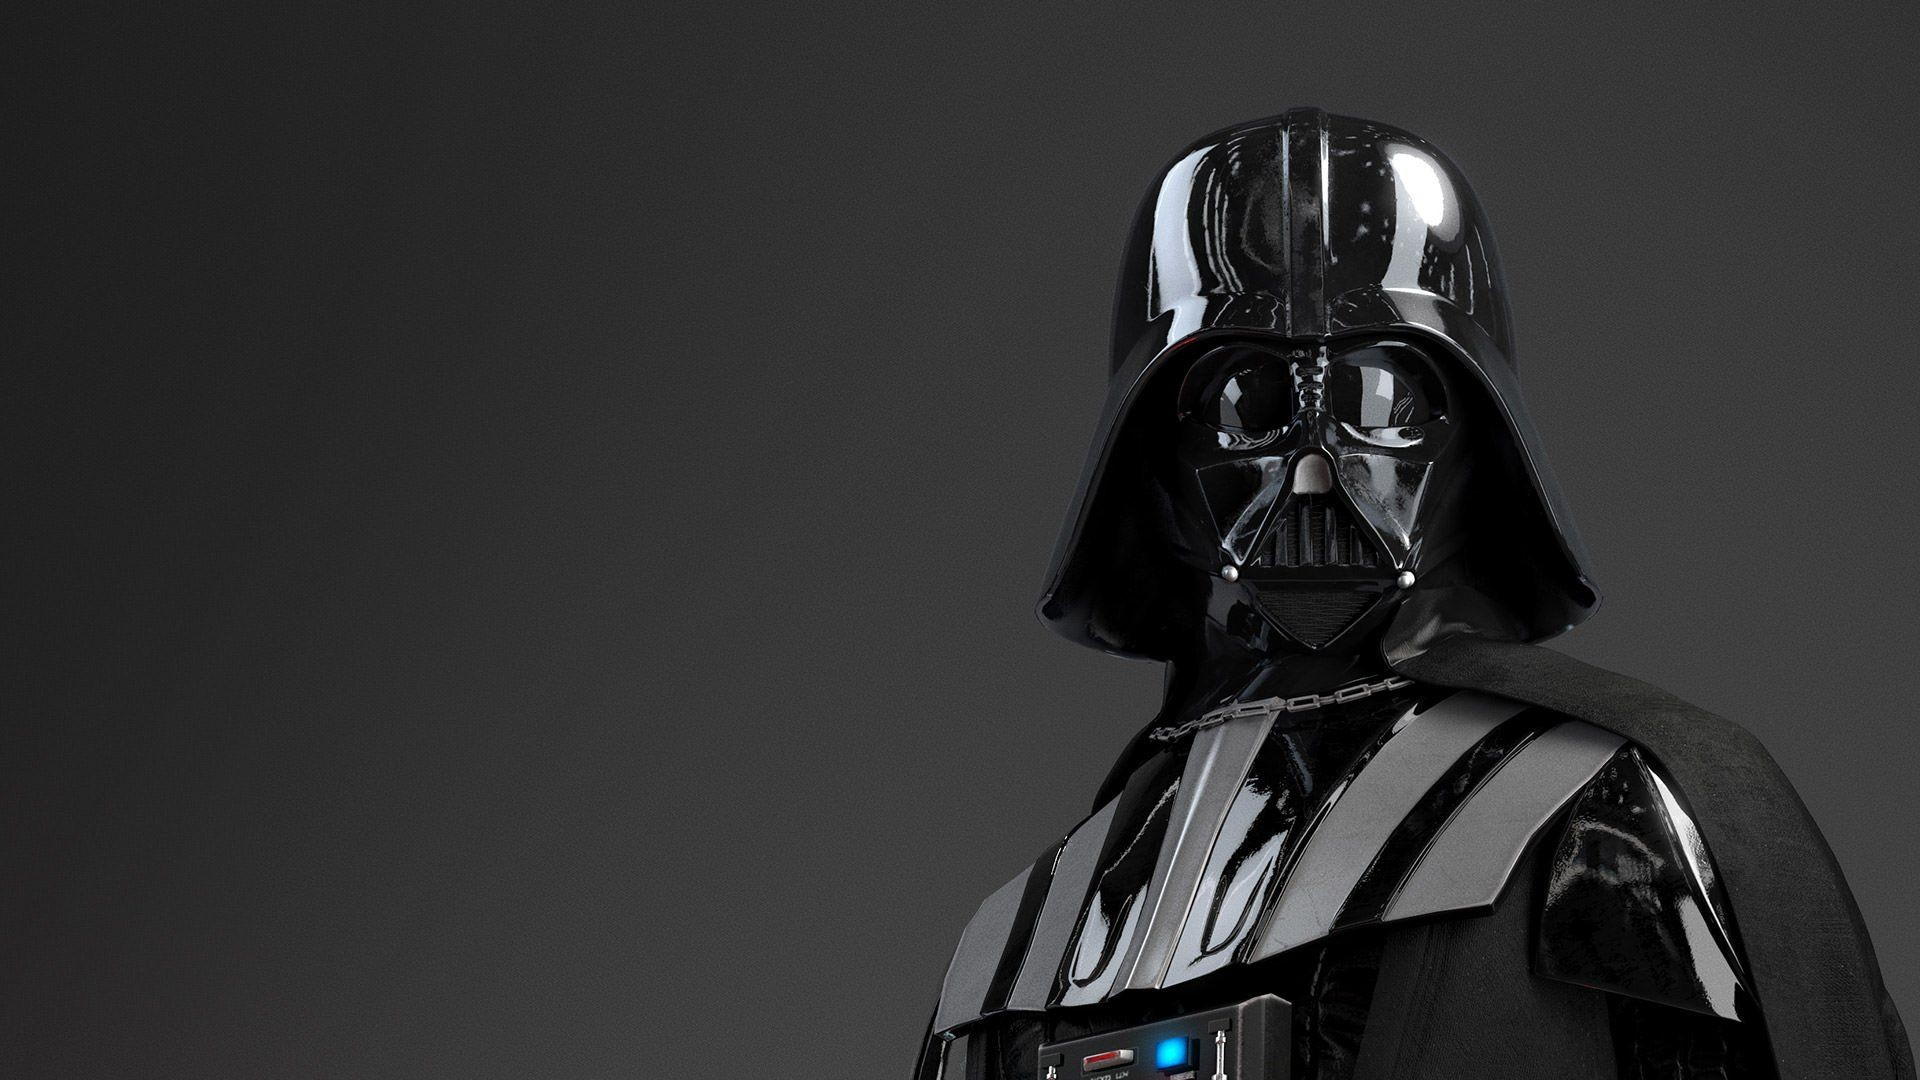 Rogue One Darth Vader Wallpaper Posted By John Anderson